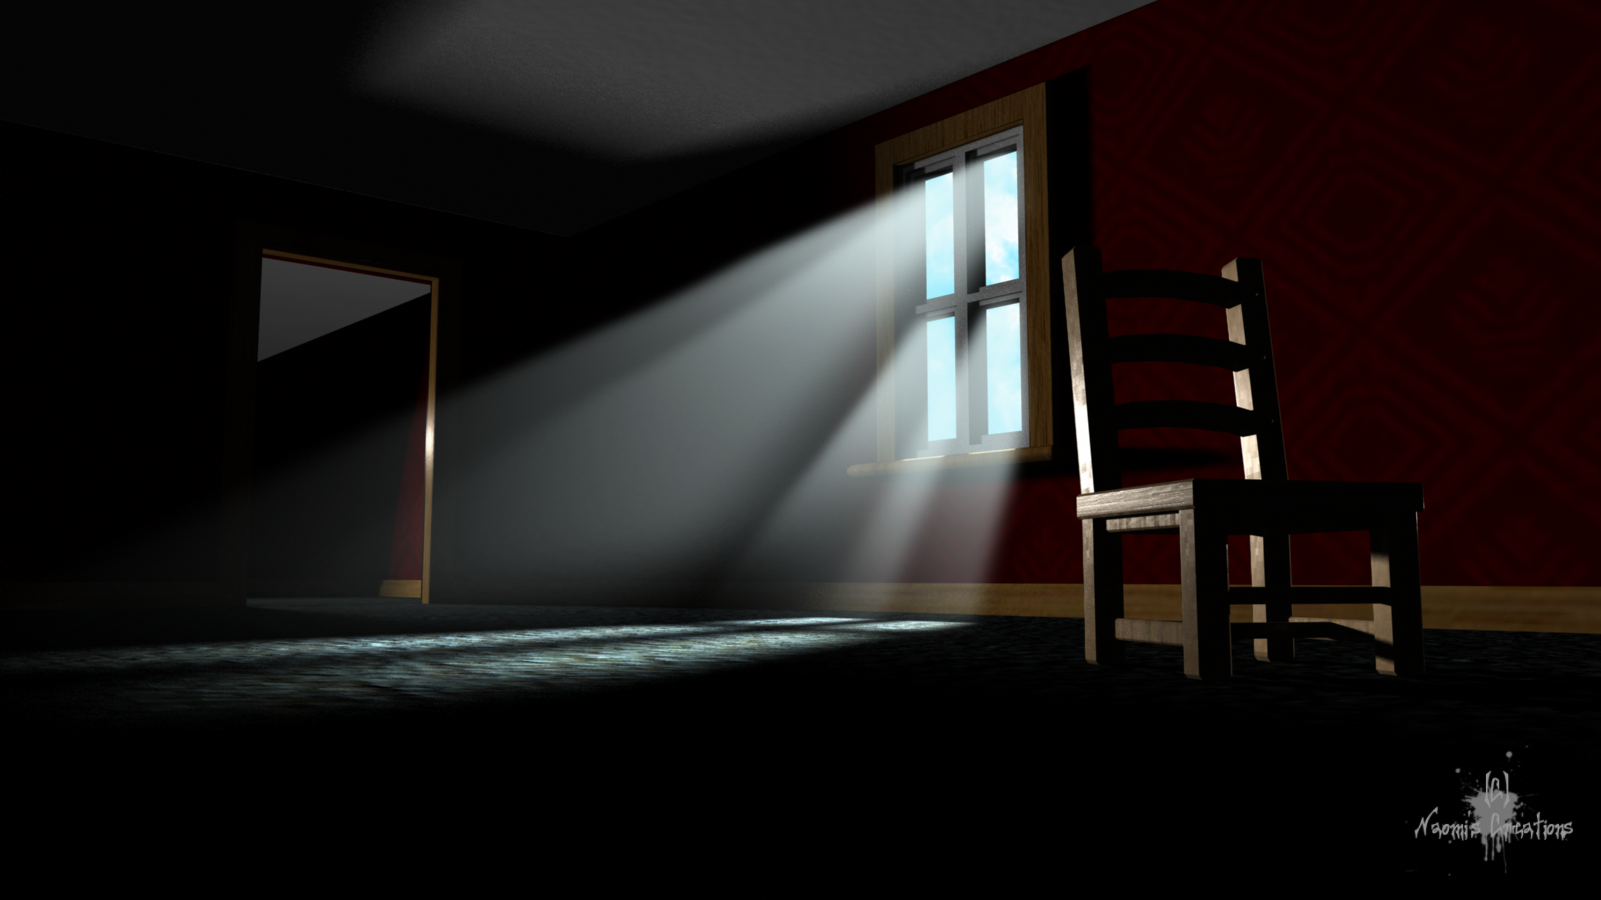 3D Empty Room With Chair